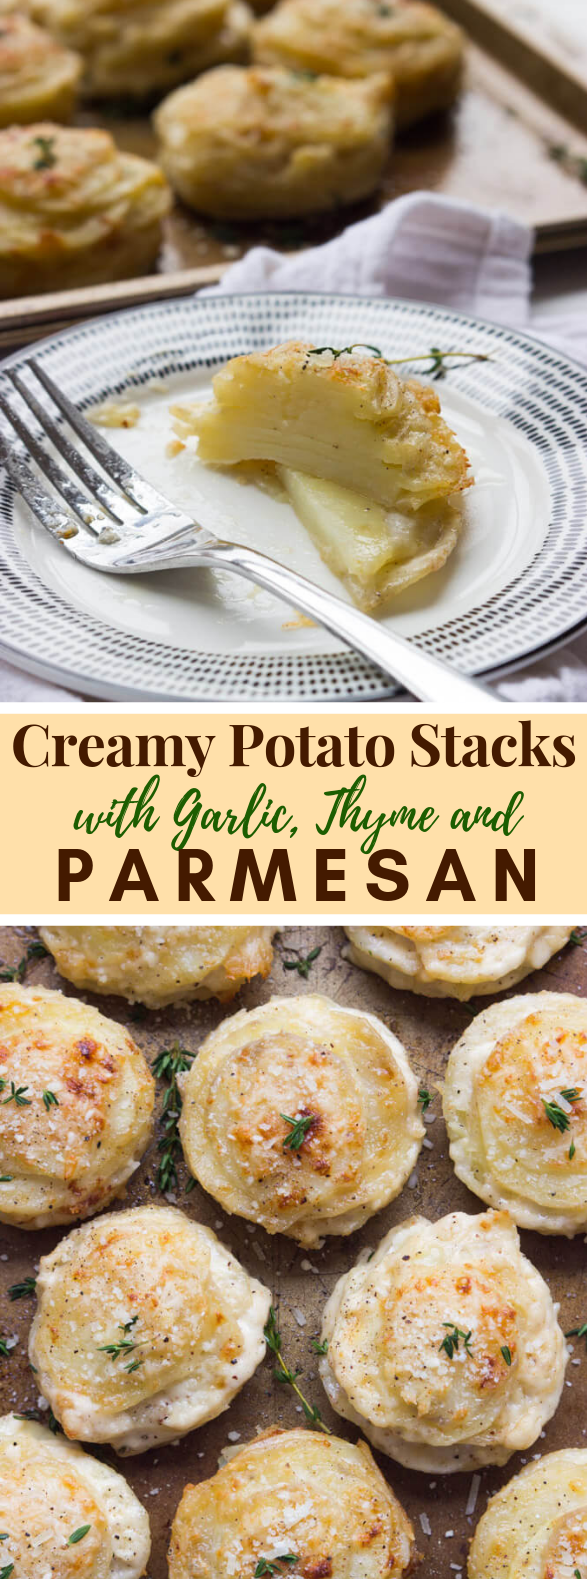 CREAMY POTATO STACKS WITH GARLIC, THYME, AND PARMESAN #dinner #partydinner